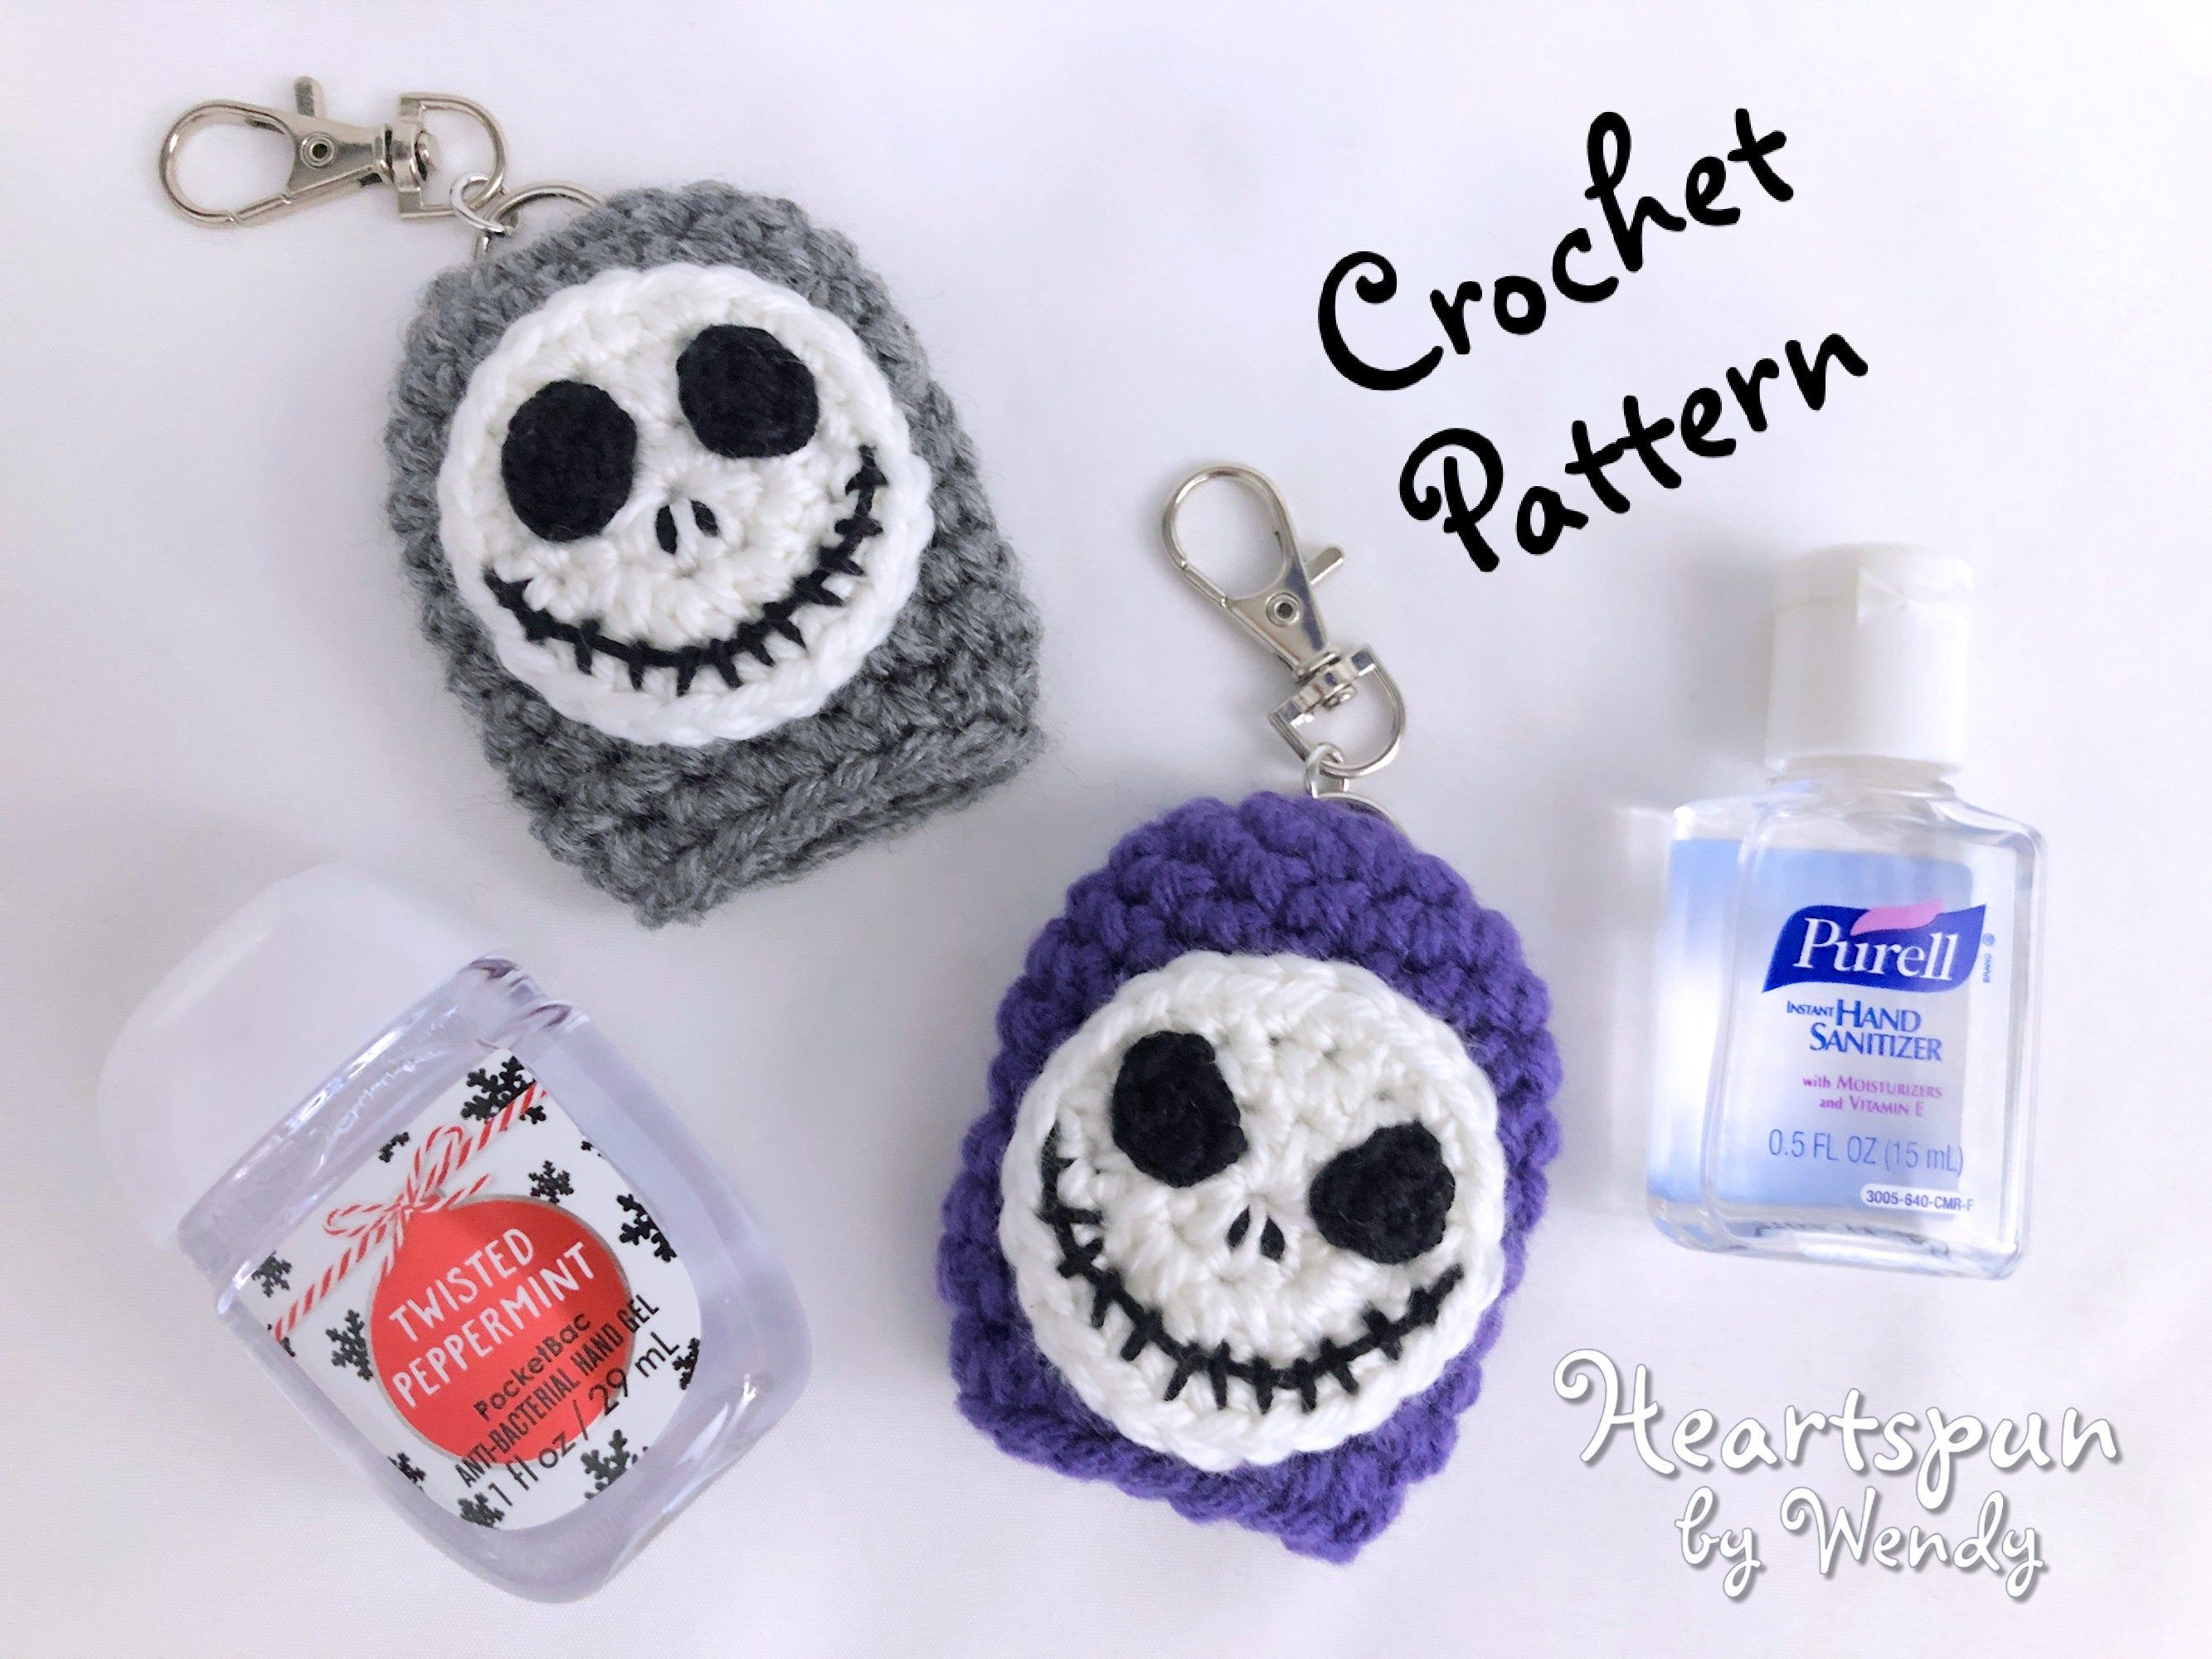 Crochet Pattern For You To Make A Jack Skellington Hand Sanitizer